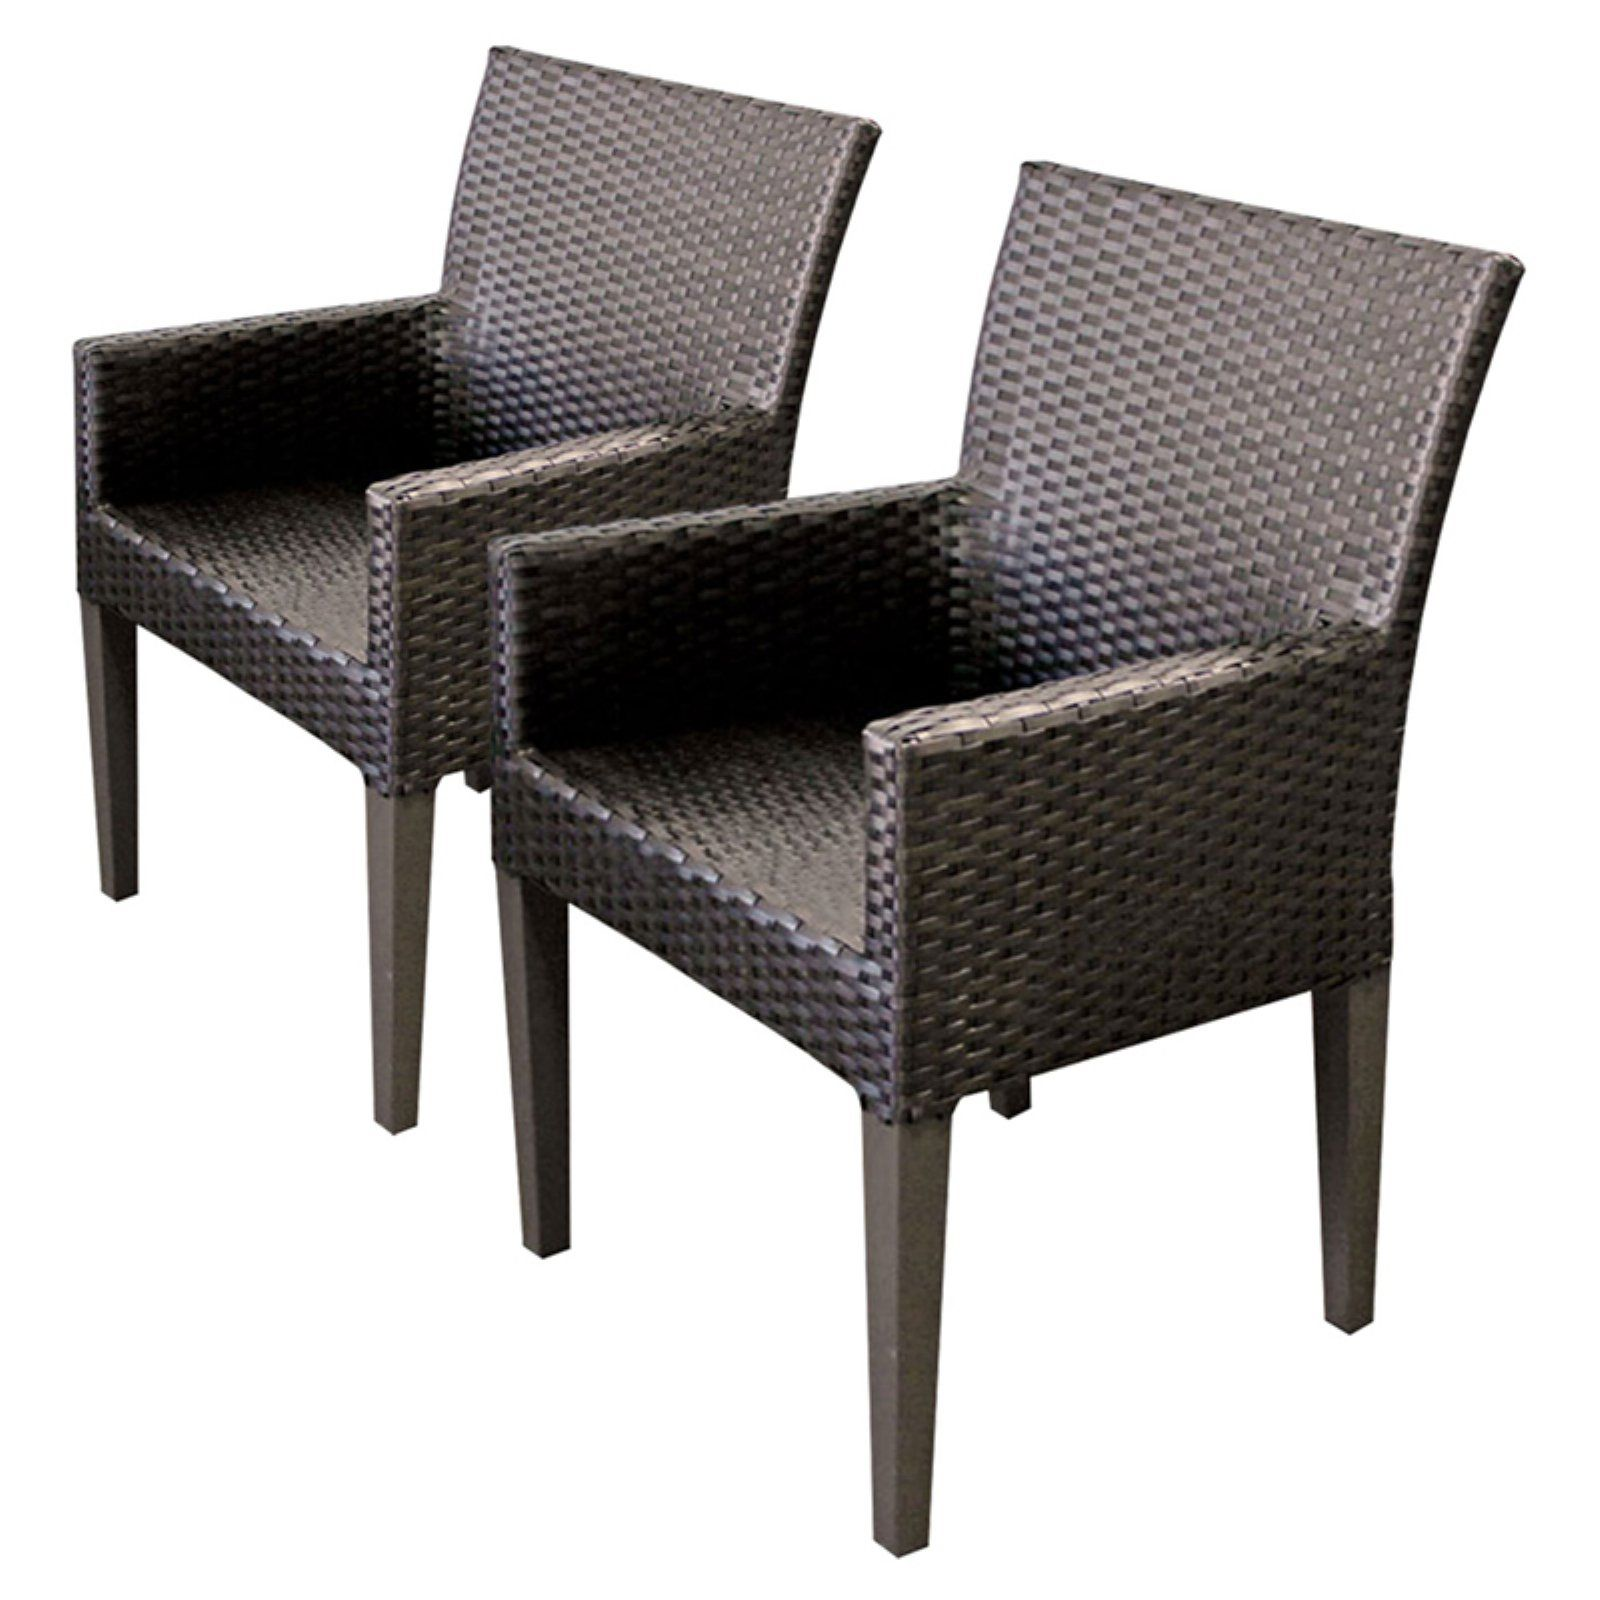 Outdoor Tk Clics Barbados Wicker Patio Dining Arm Chairs